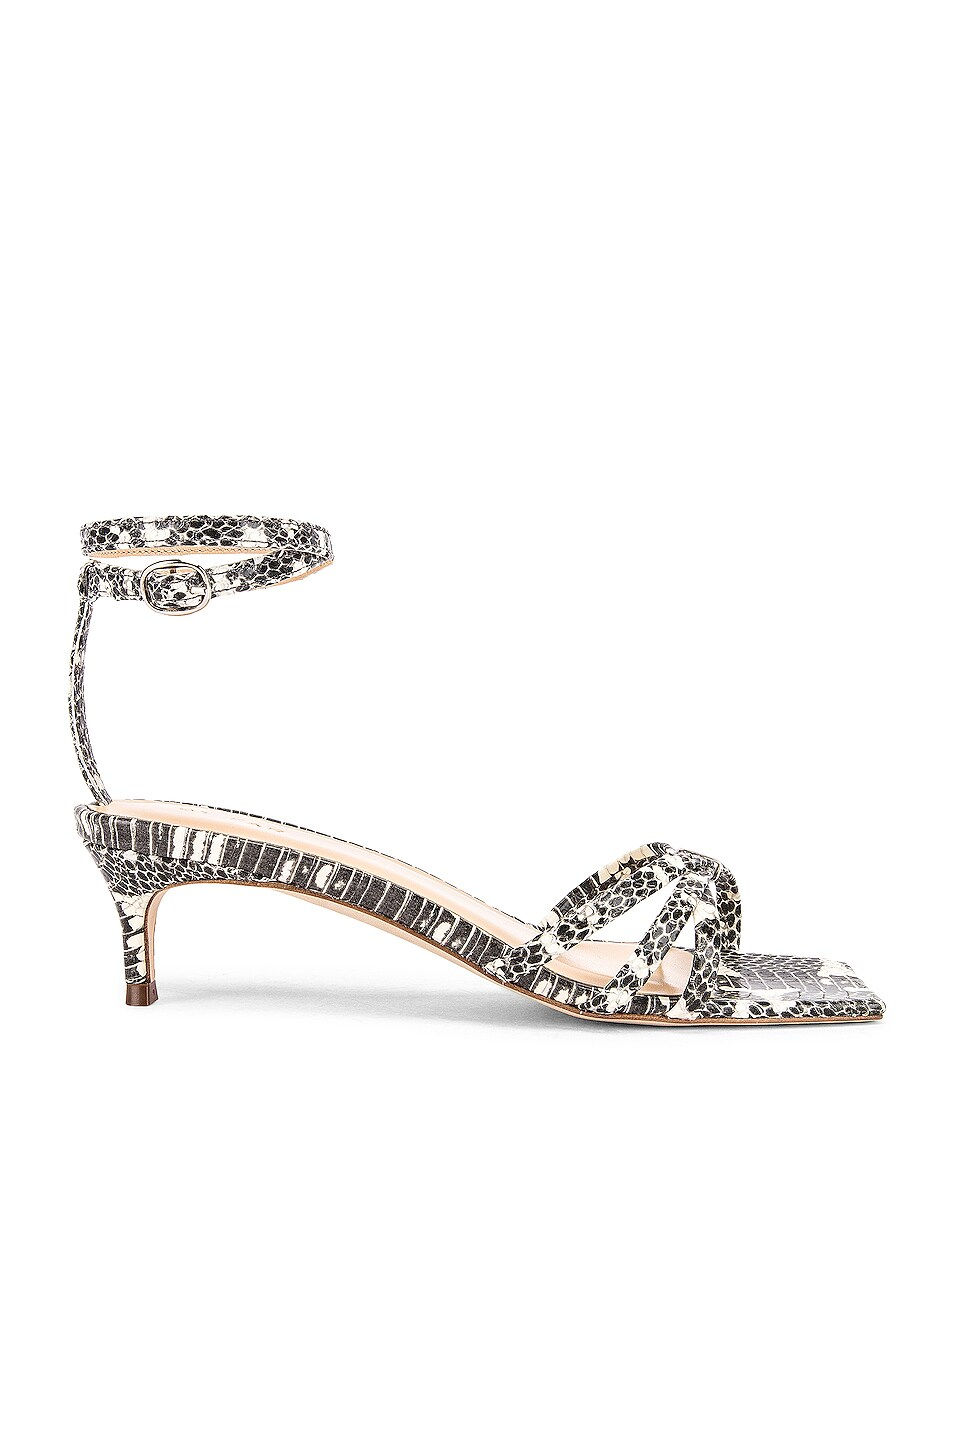 Image 1 of BY FAR Kaia Snake Print Leather Sandal in Graphic